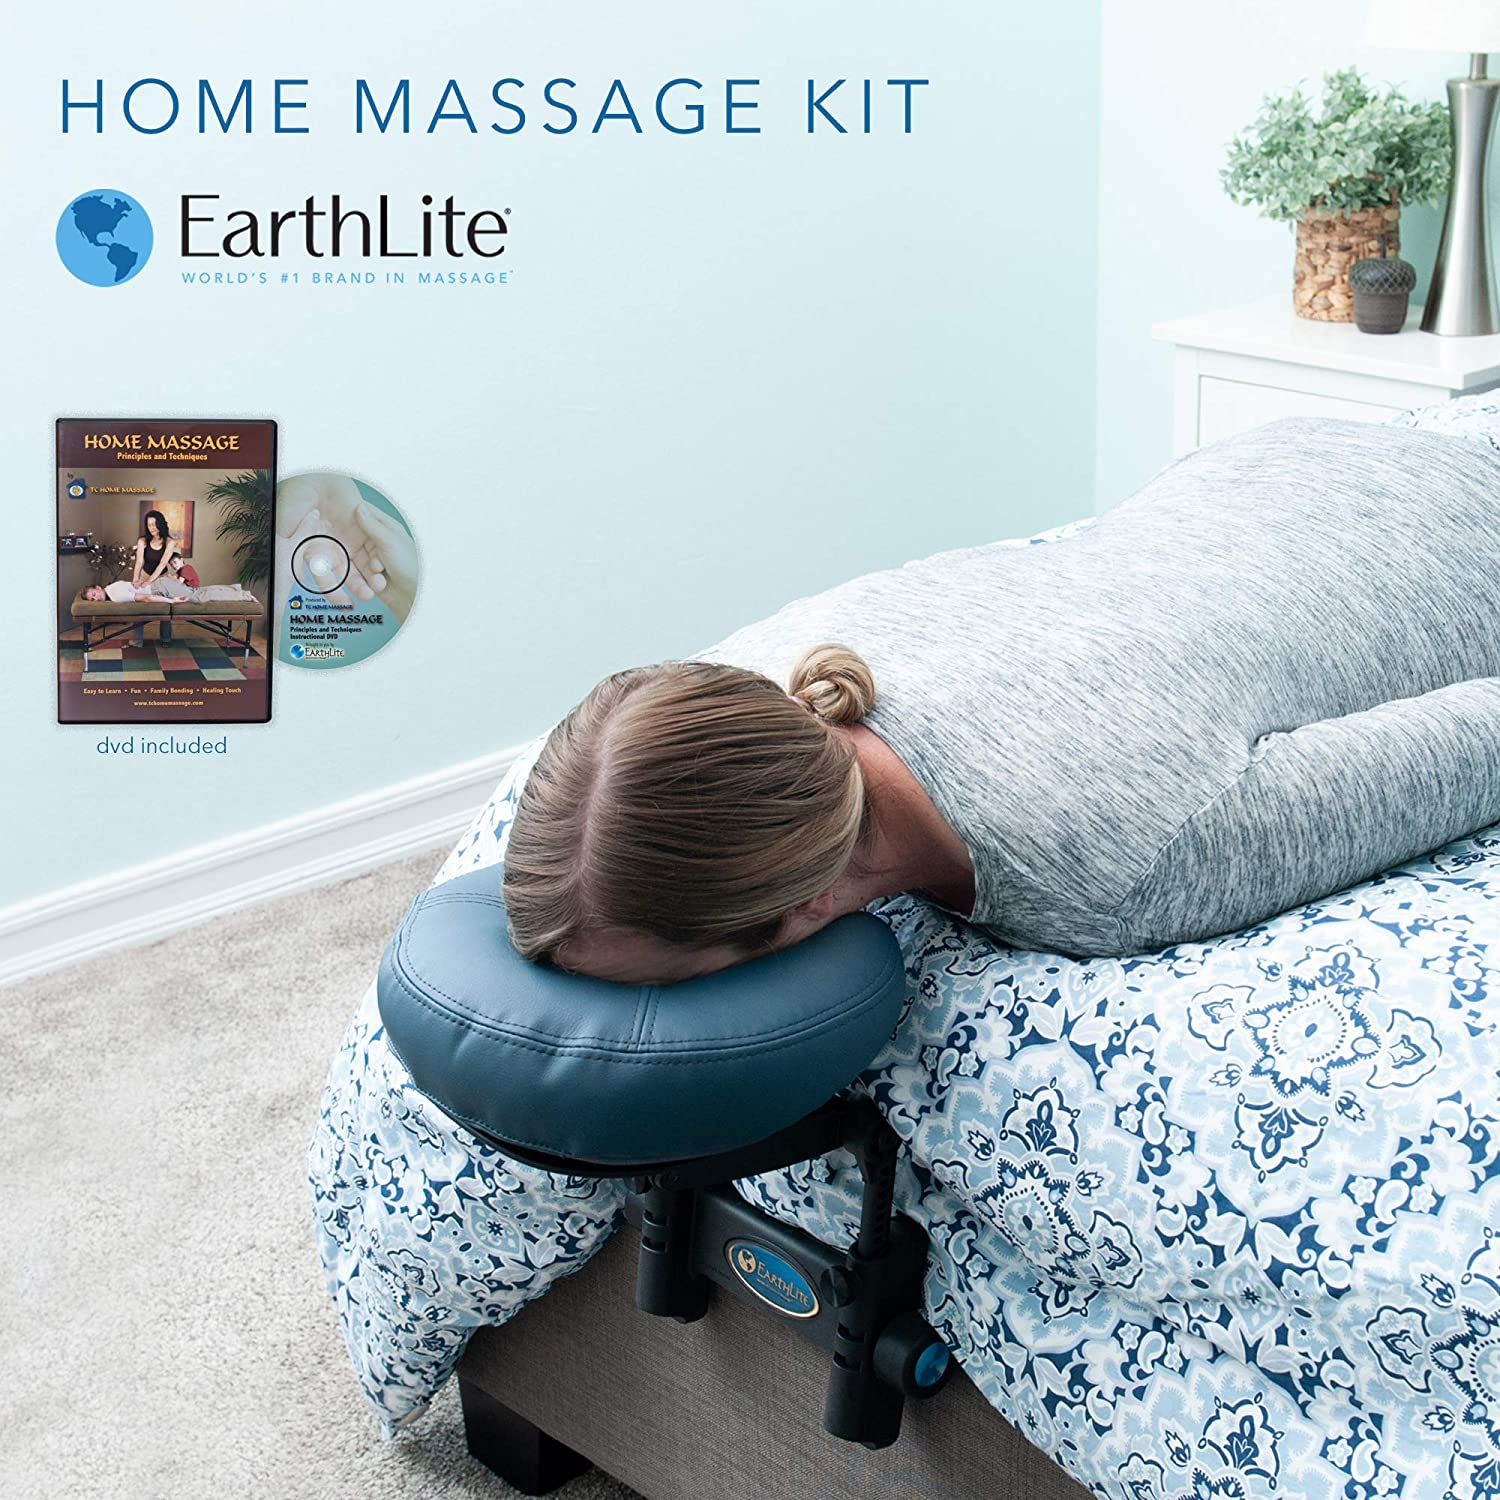 EARTHLITE Home Massage Kit neutrogena complete acne therapy system